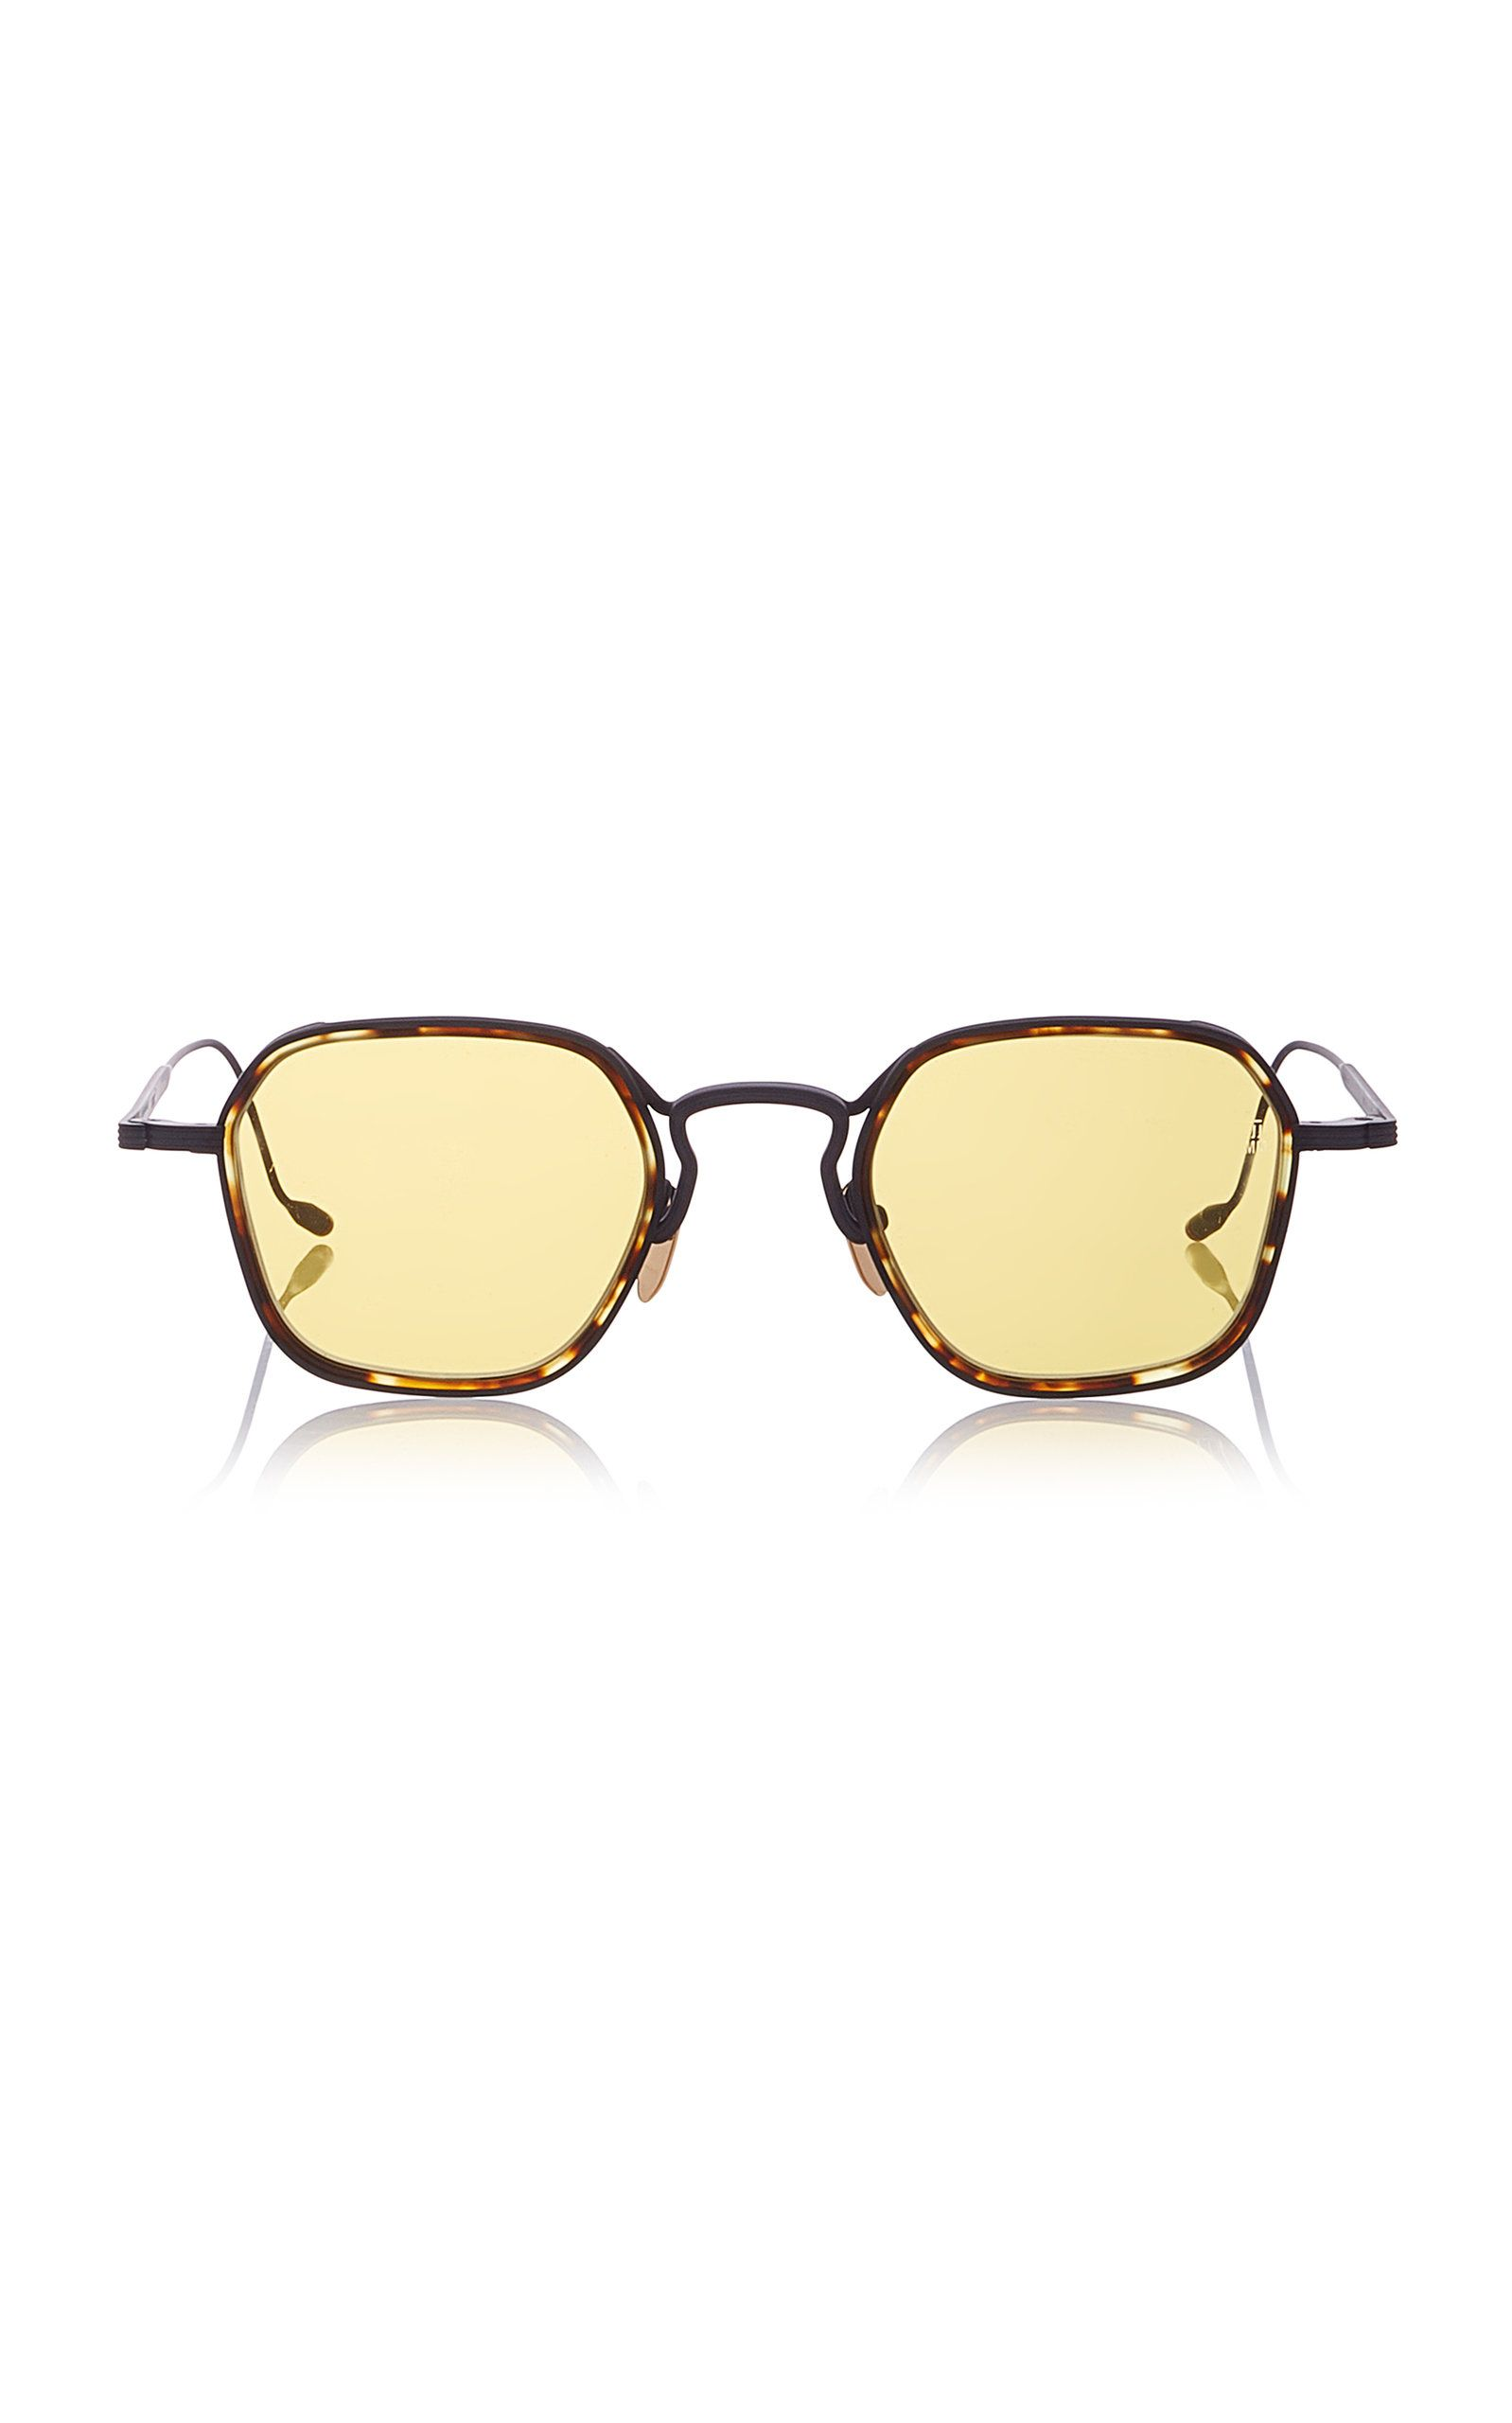 fbc04673d3c JACQUES MARIE MAGE WYATT HEXAGON-FRAME TORTOISESHELL WIRE SUNGLASSES.   jacquesmariemage